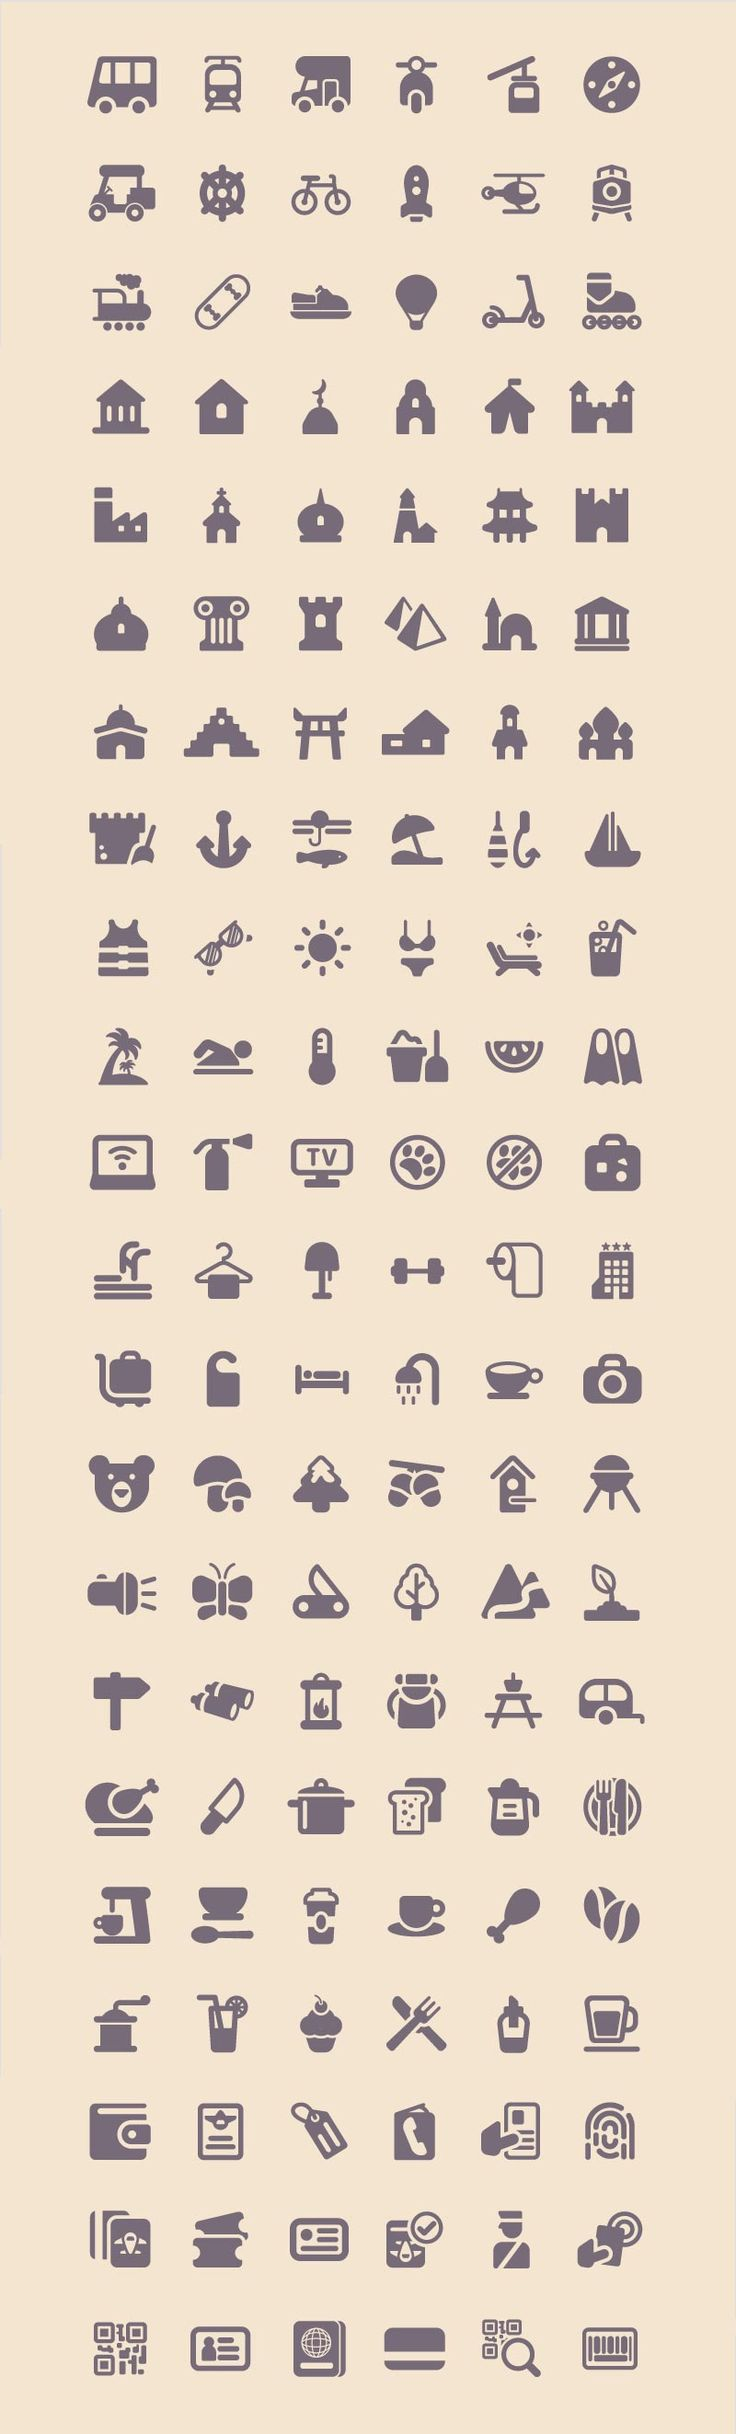 Freebie: Tourism & Travel Icon Set (100 Icons, PNG, SVG) by Smashing Magazine